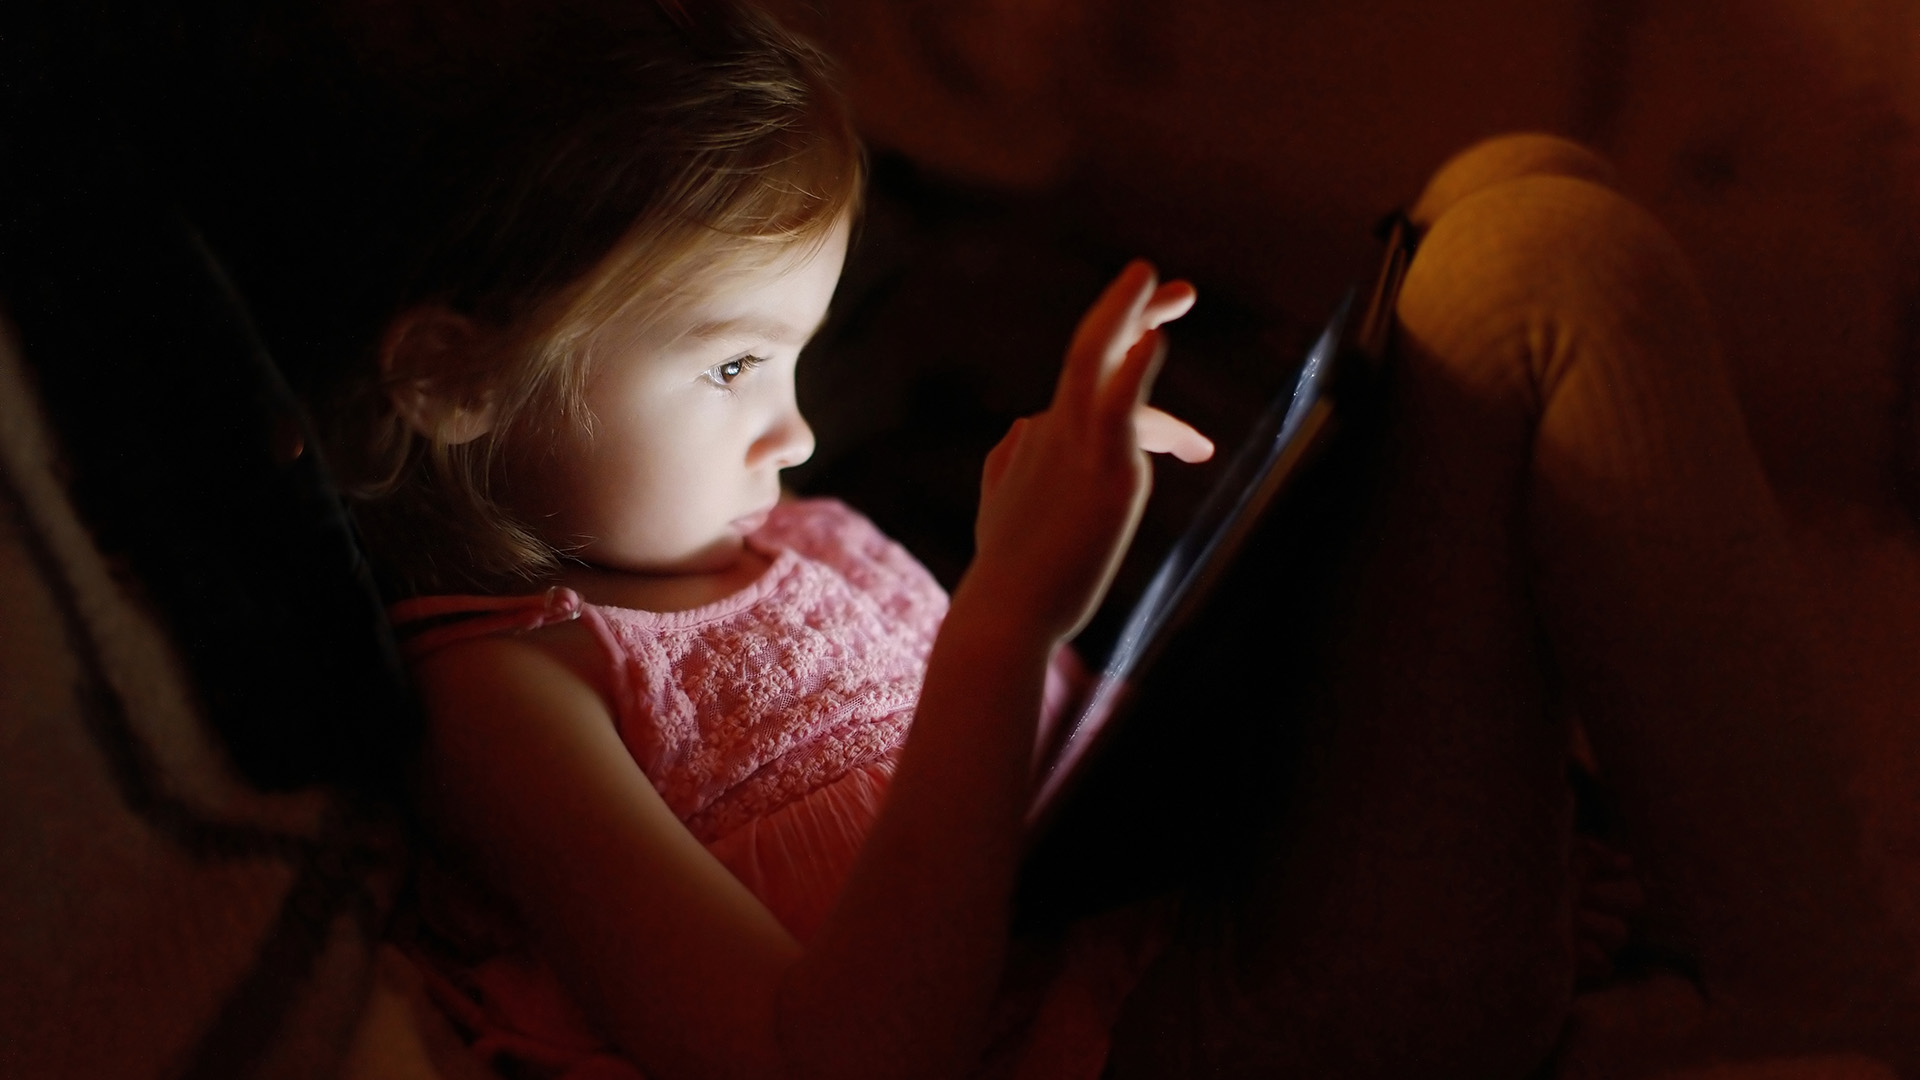 New research centre to study technology's impact on children